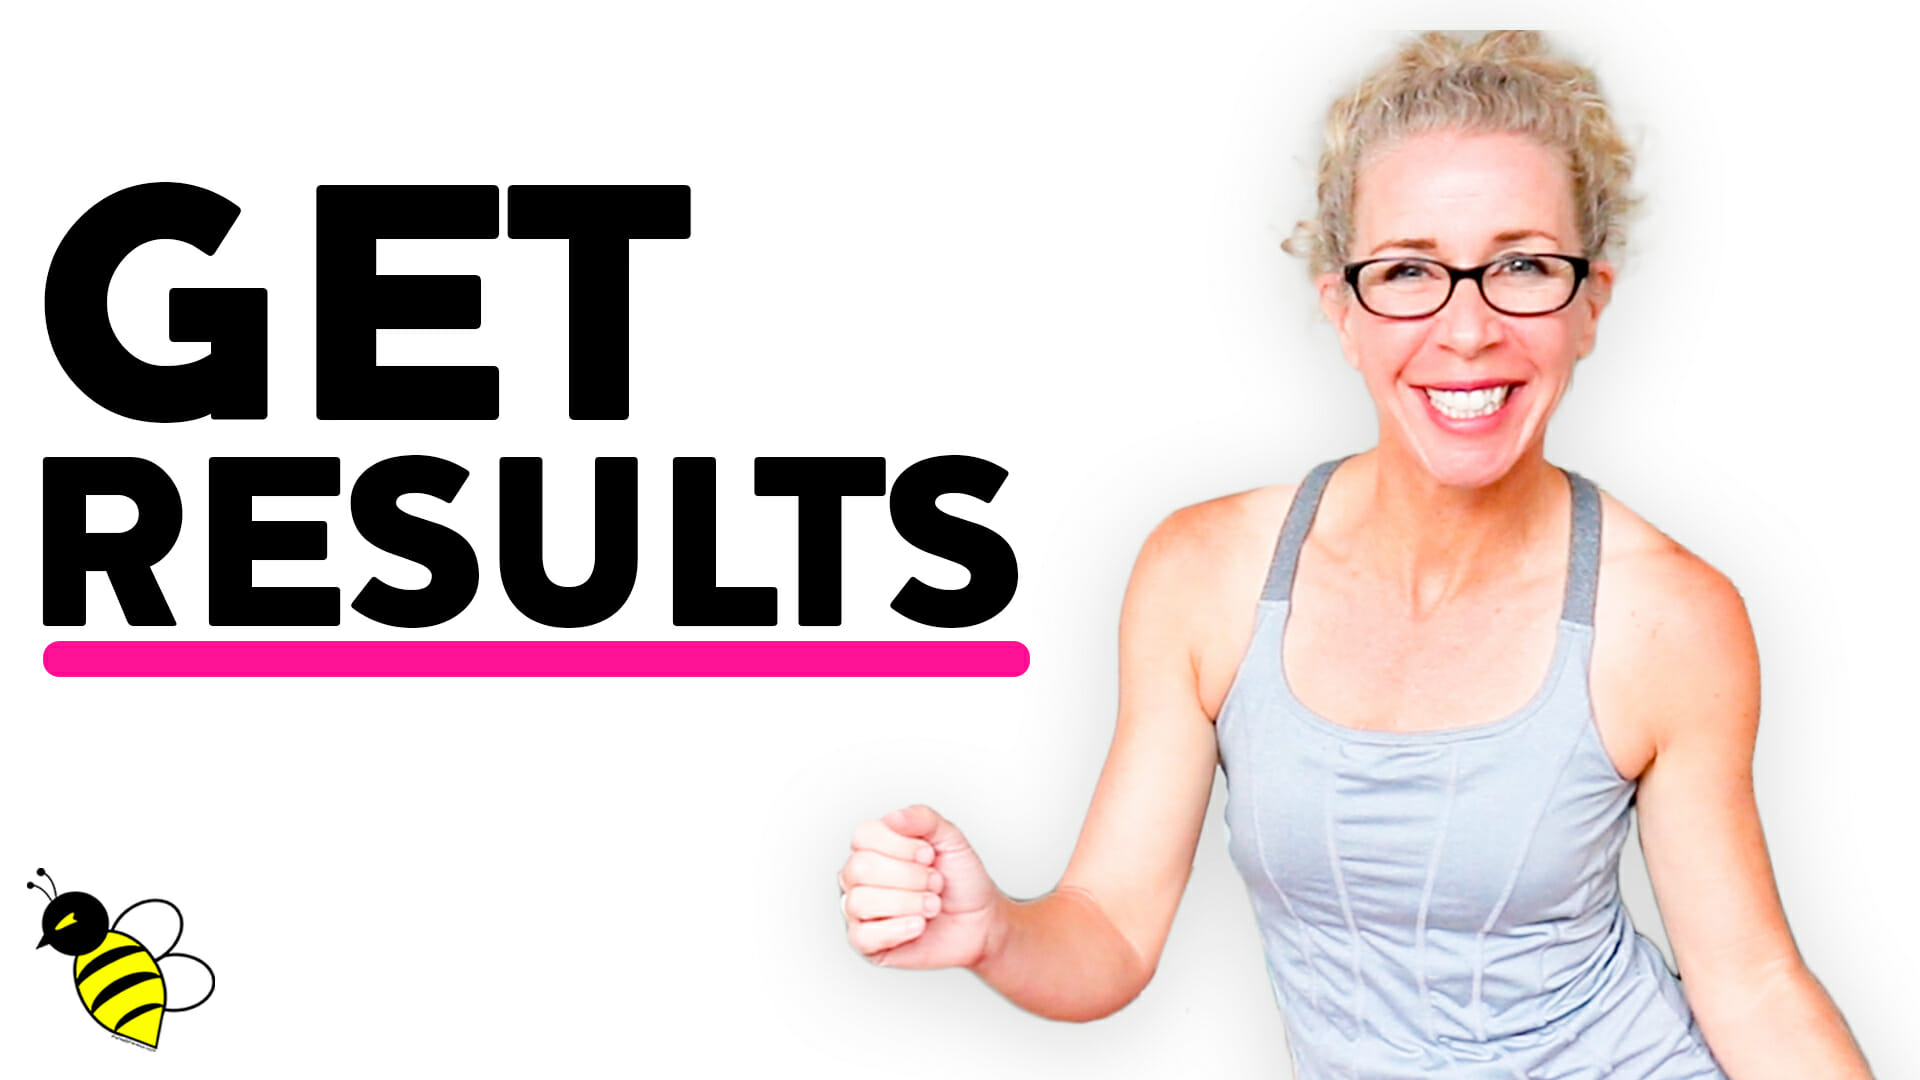 Five Steps to Fitness RESULTS 30 Minute Walk + Run Workout